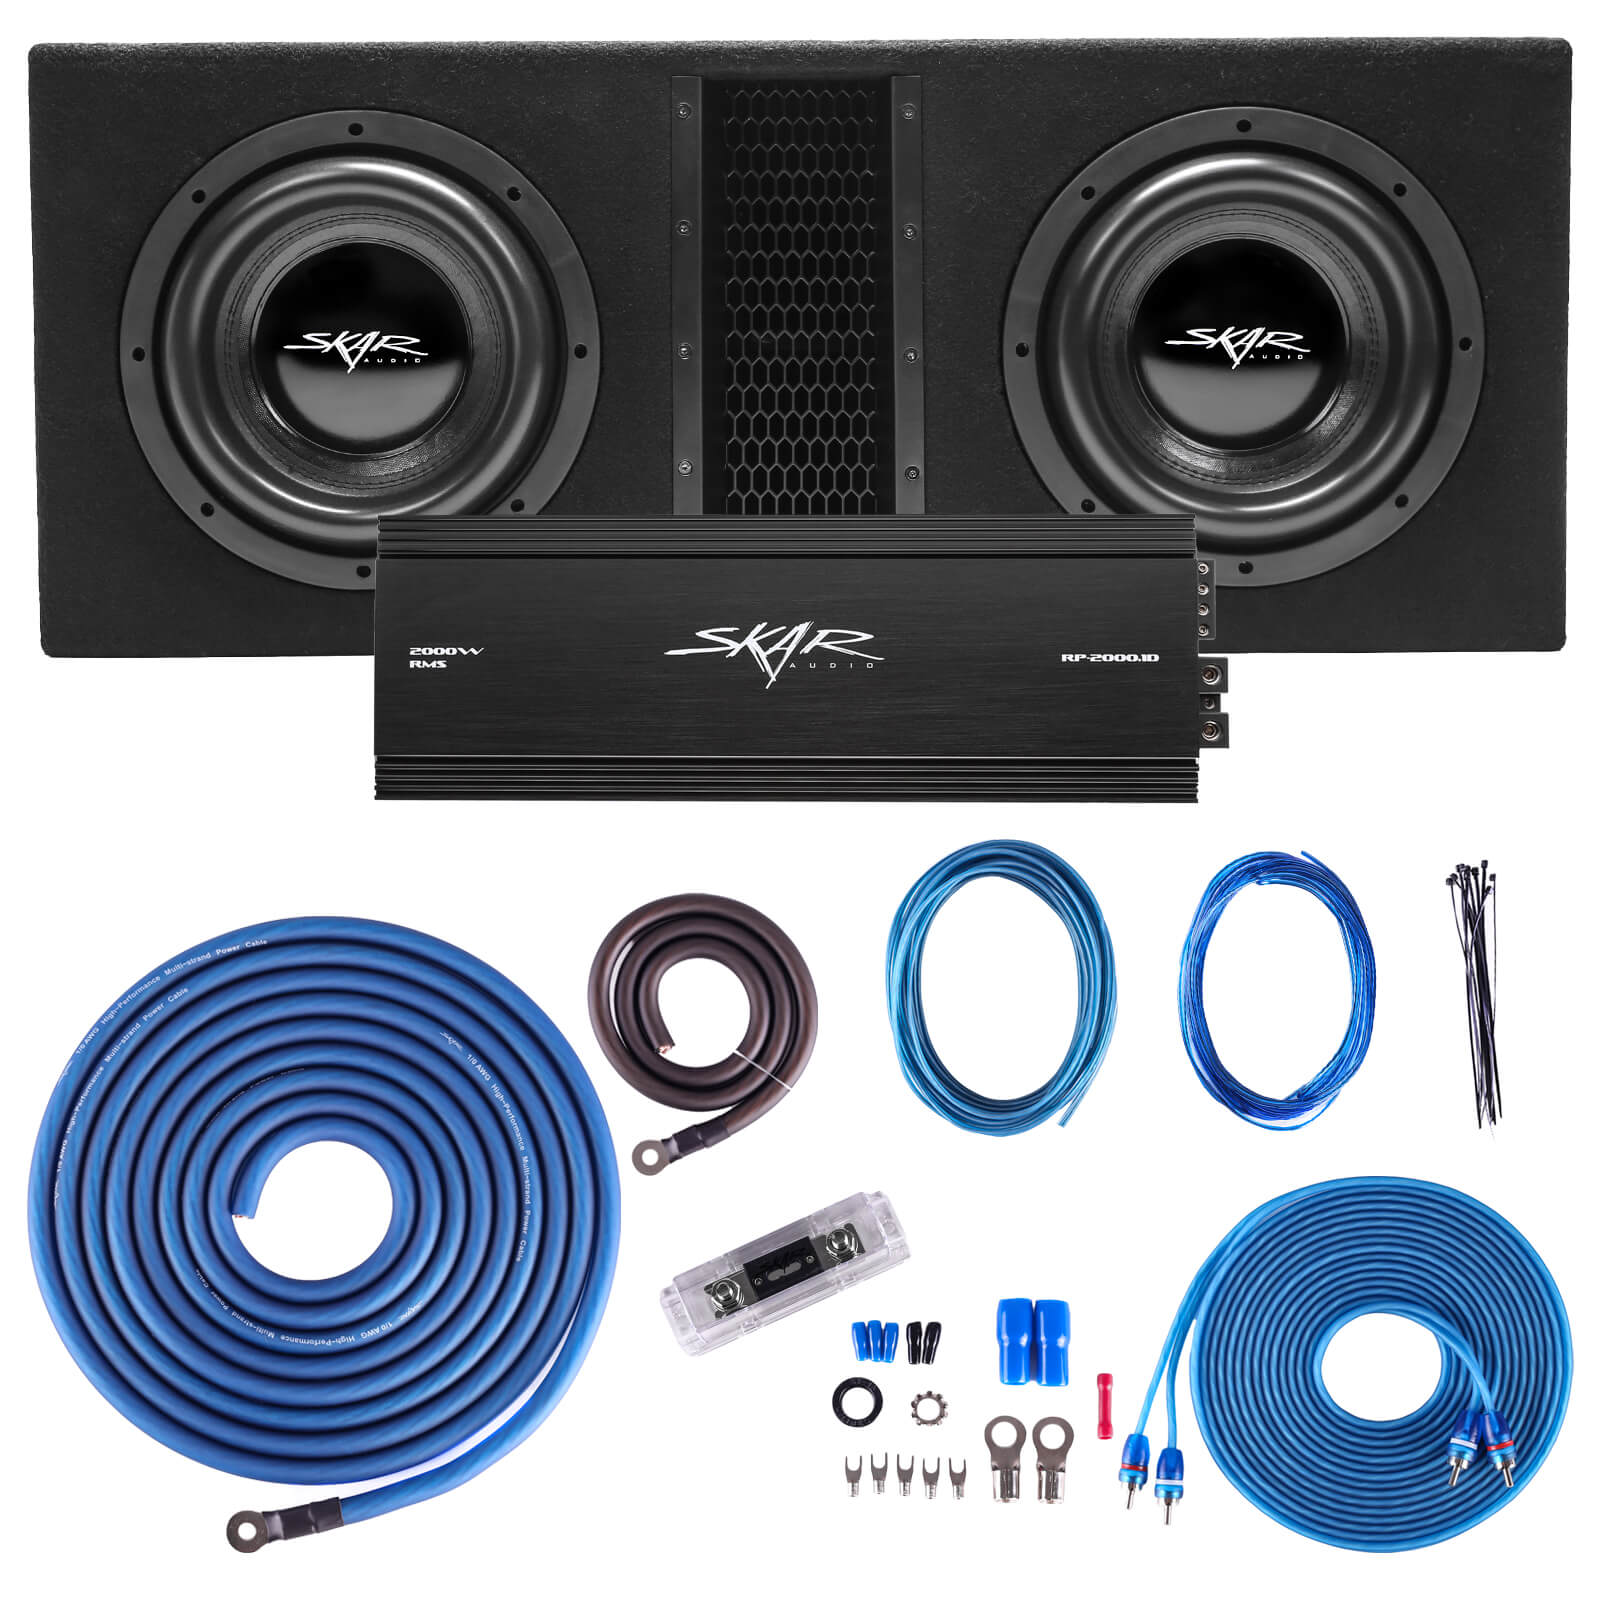 "Skar Audio Dual EVL 10"" 4000 Watt Loaded Sub Box and Amplifier - Package View"